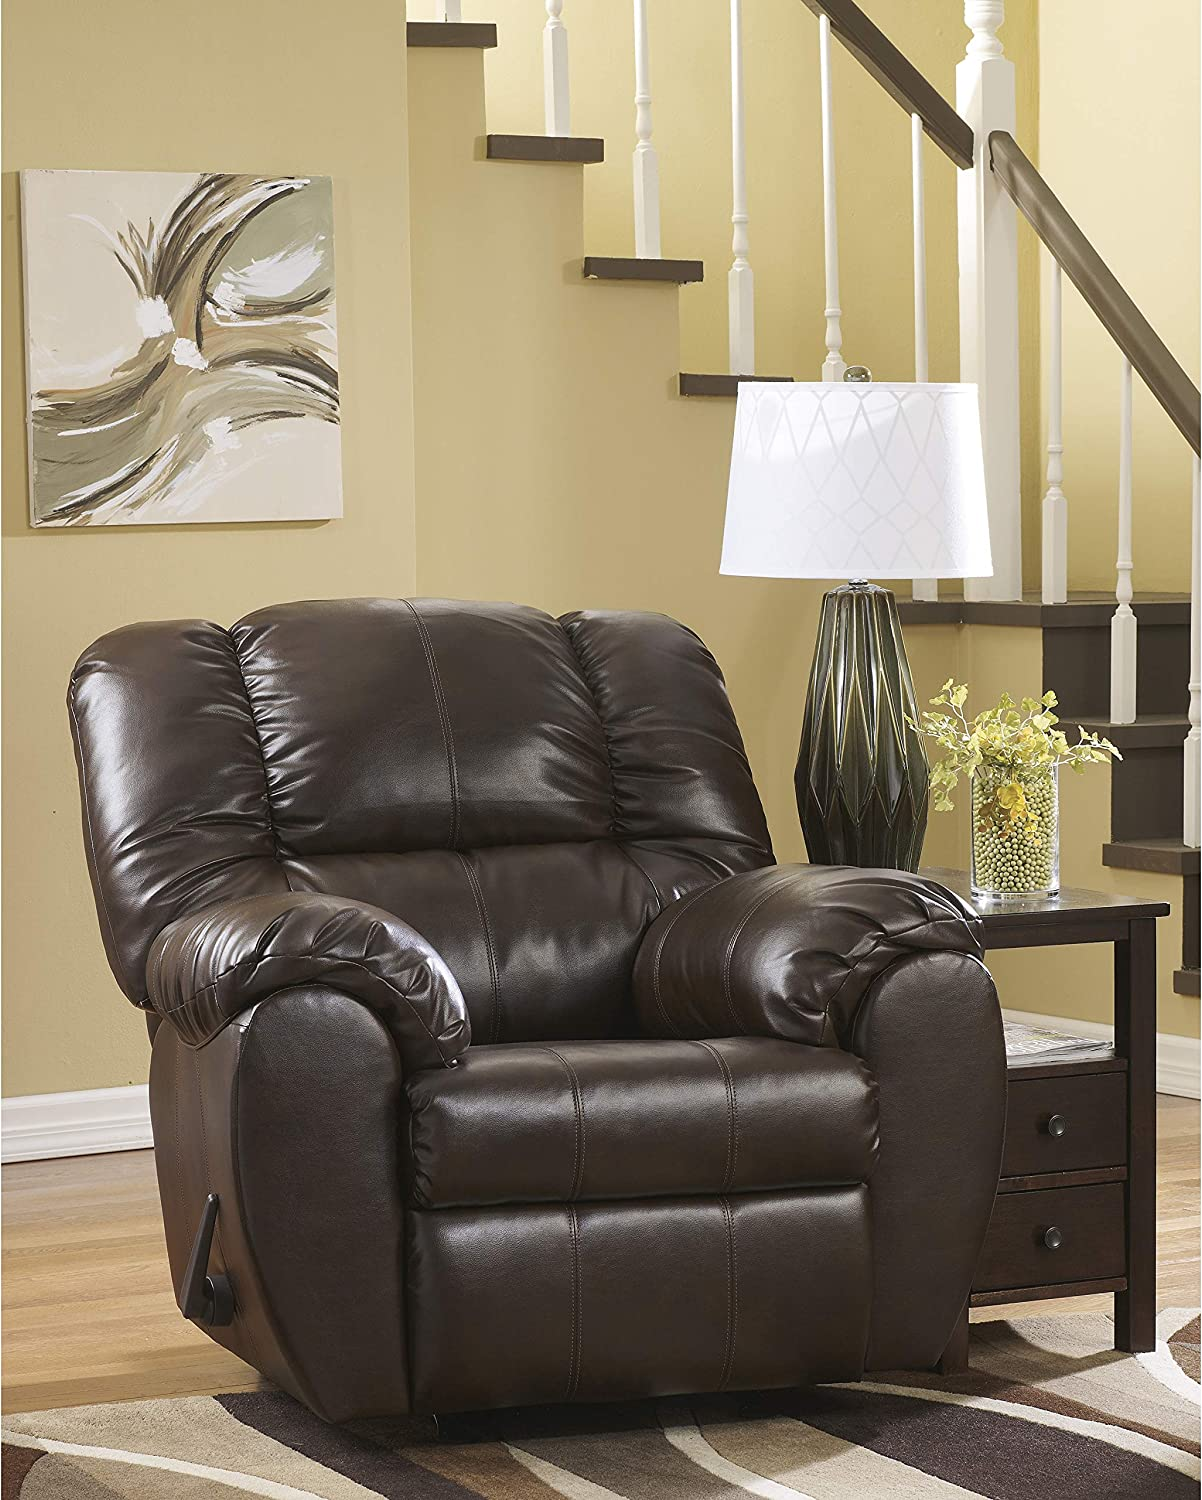 Flash Furniture Signature Design by Ashley Dylan DuraBlend Rocker Recliner in Espresso DuraBlend